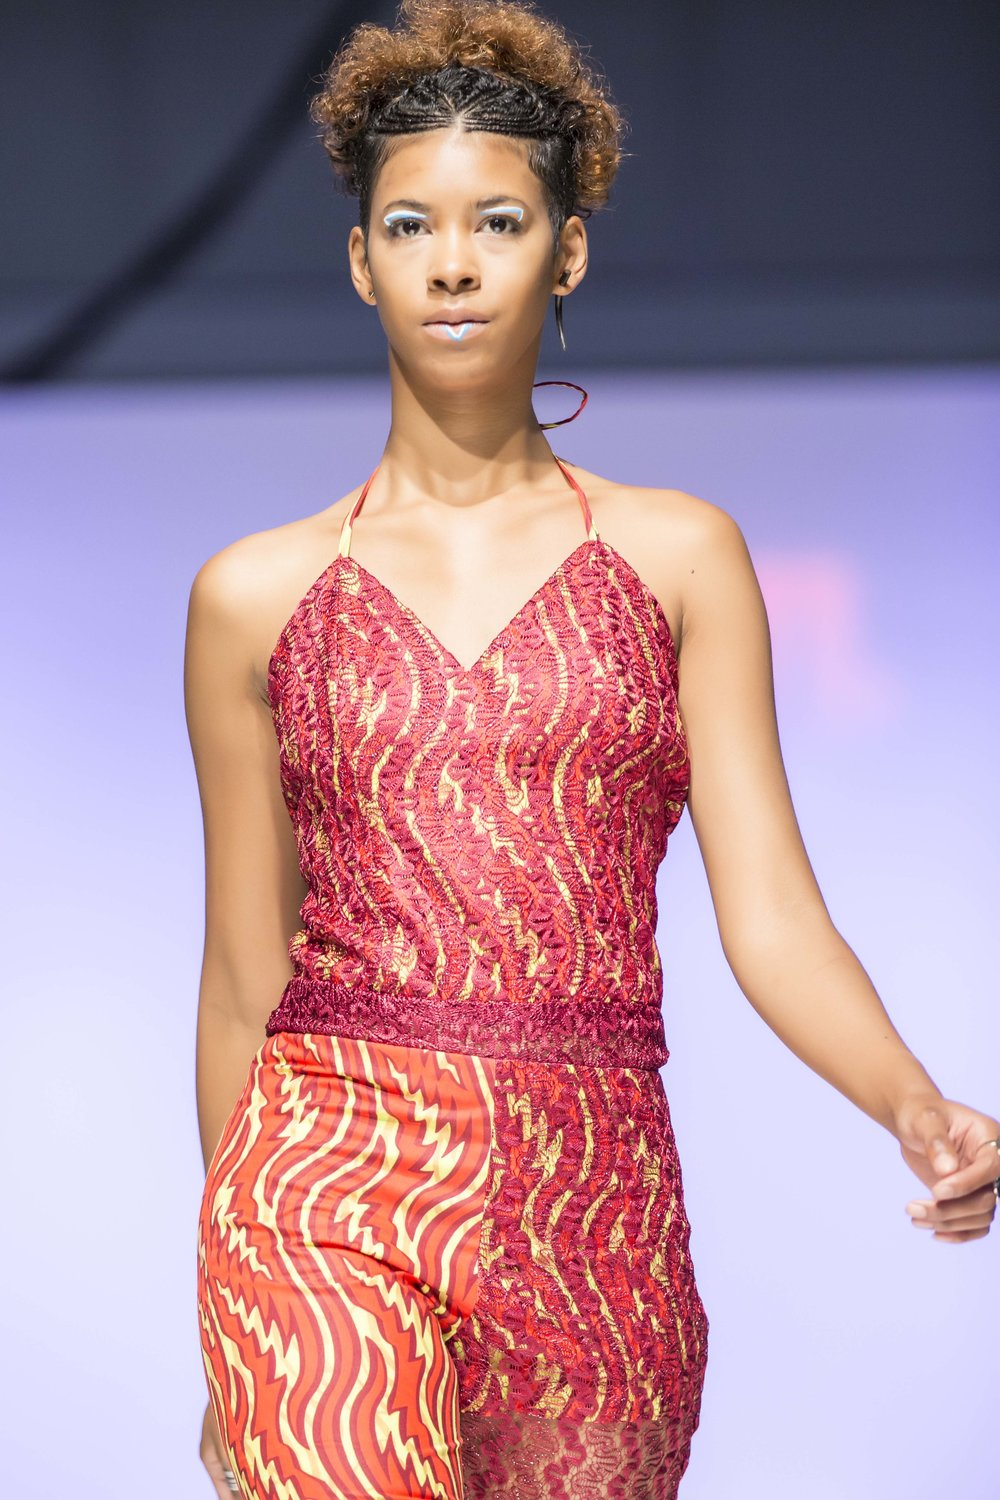 African Fashion Today-Joanna Mitroi Photography 0825 - lores - Copy.jpg